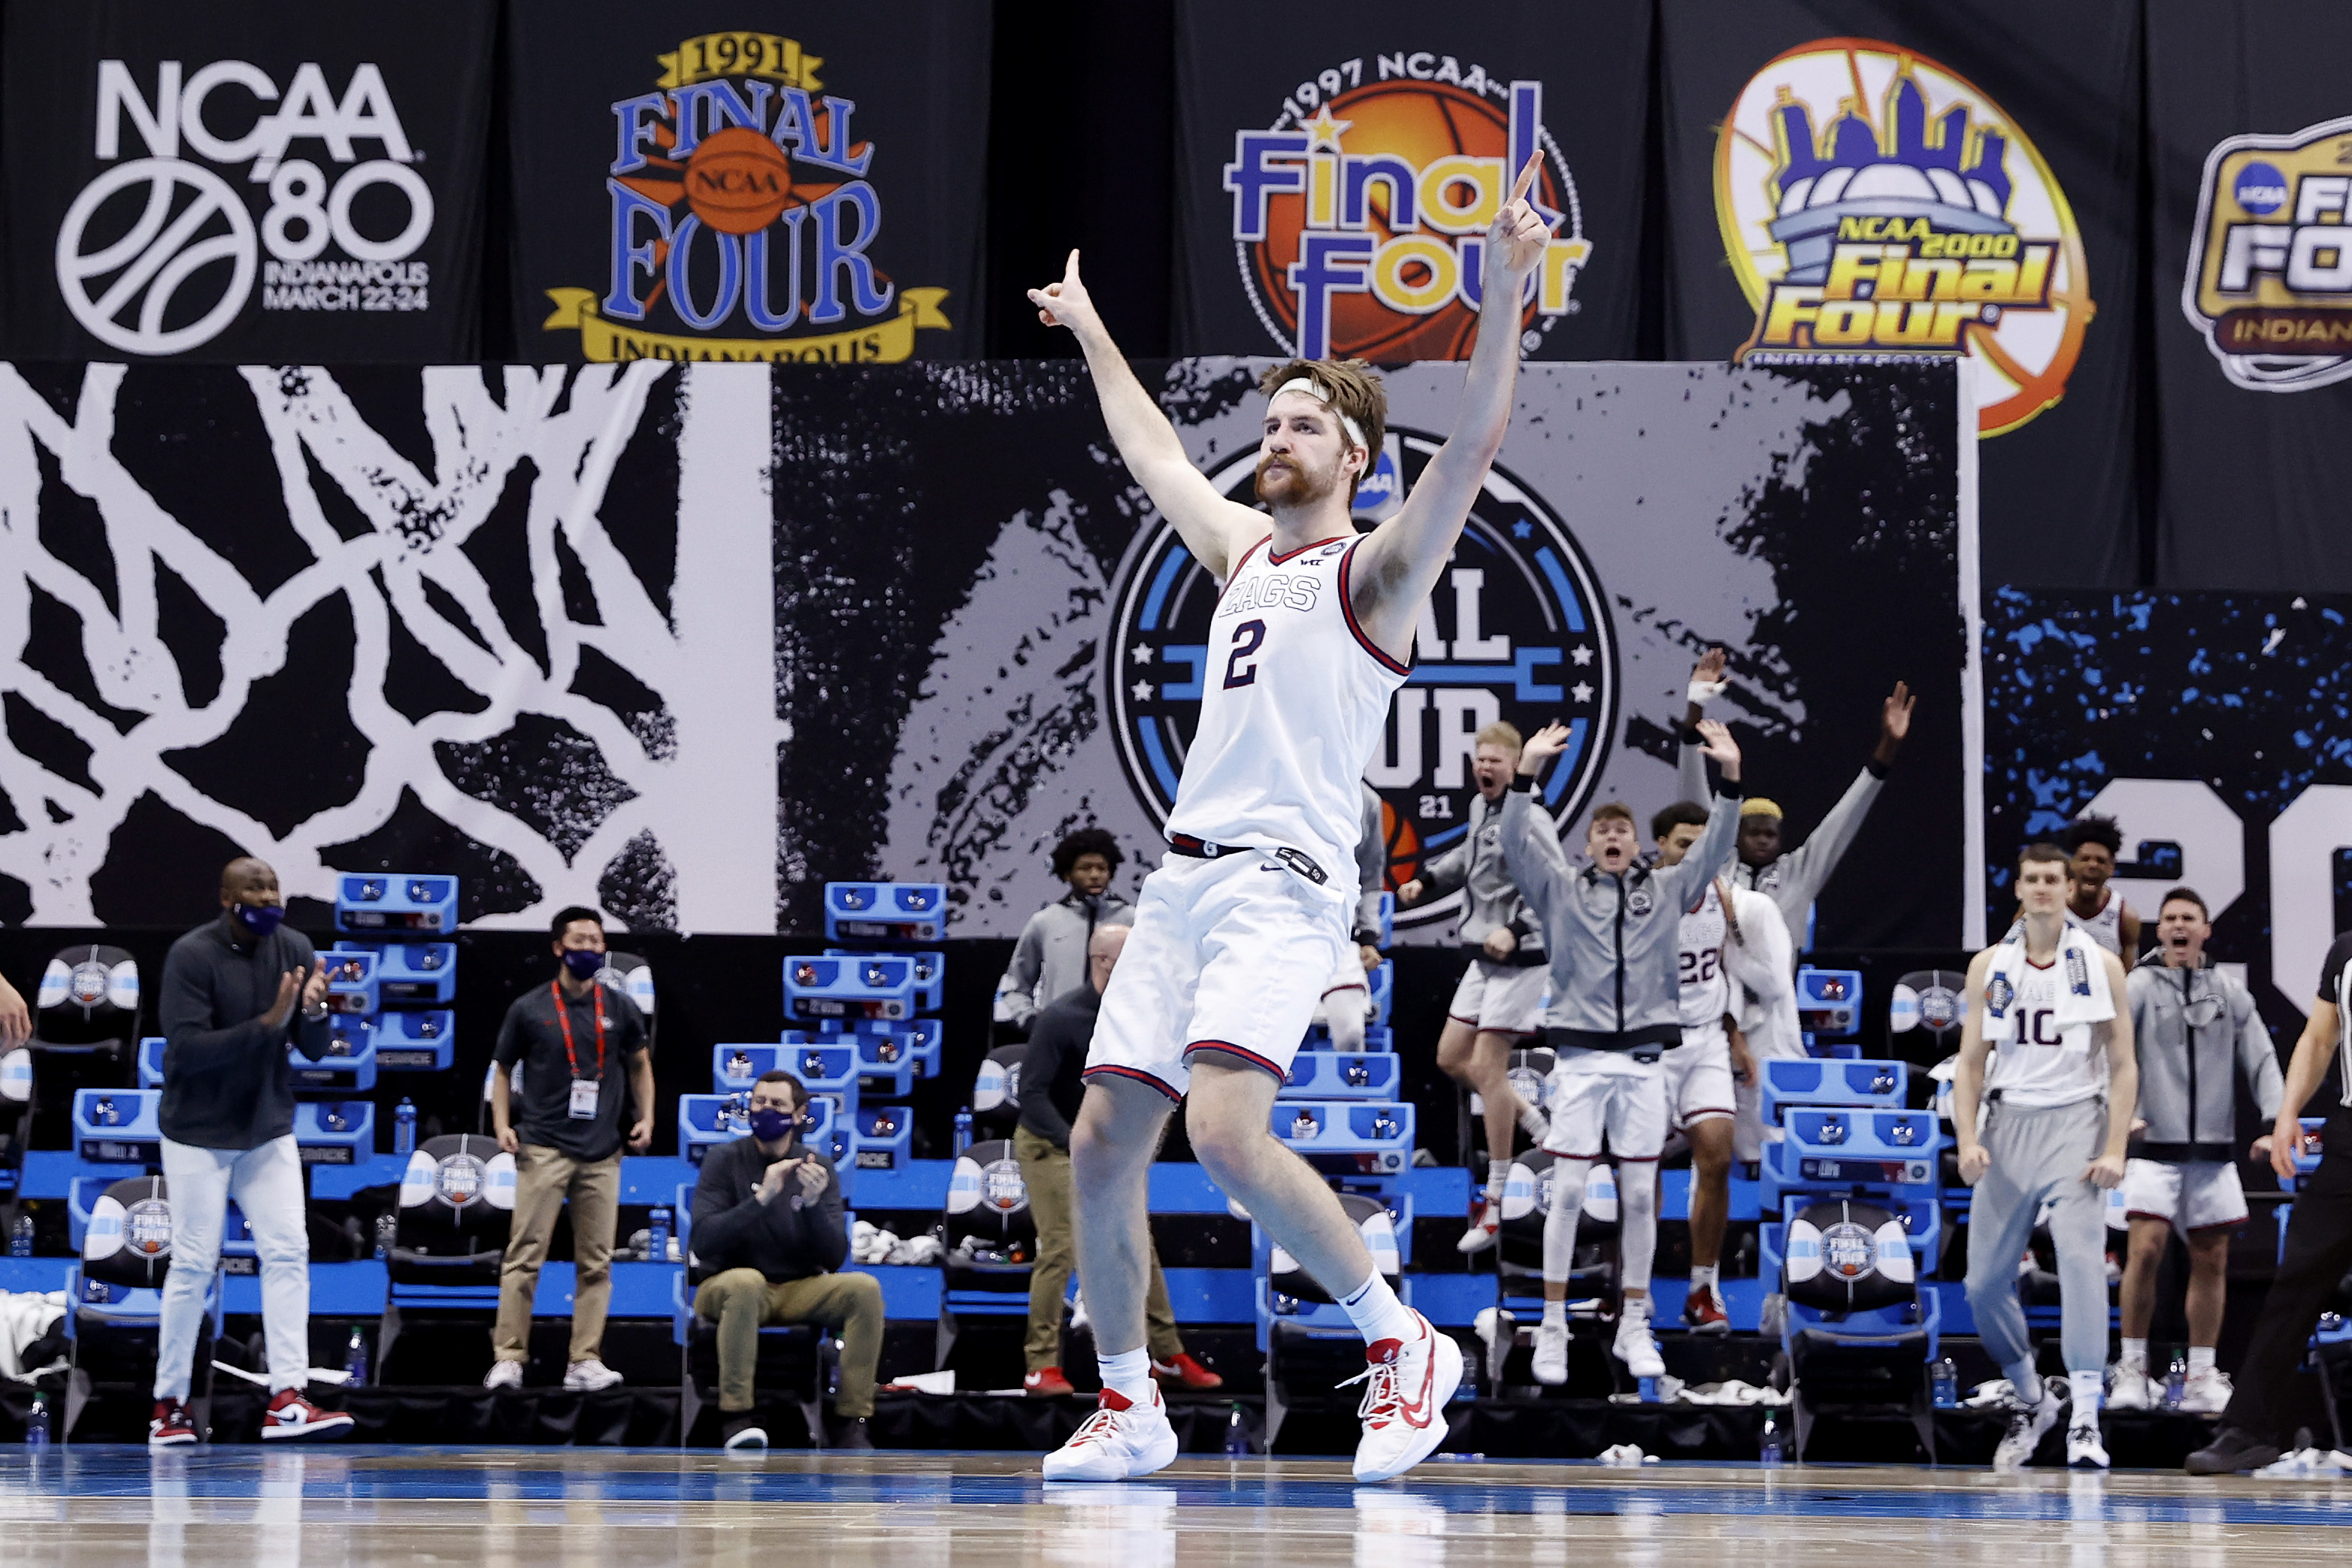 Drew Timme of the Gonzaga Bulldogs reacts in the second half against the UCLA Bruins during the 2021 NCAA Final Four semifinal at Lucas Oil Stadium on April 03, 2021 in Indianapolis, Indiana.